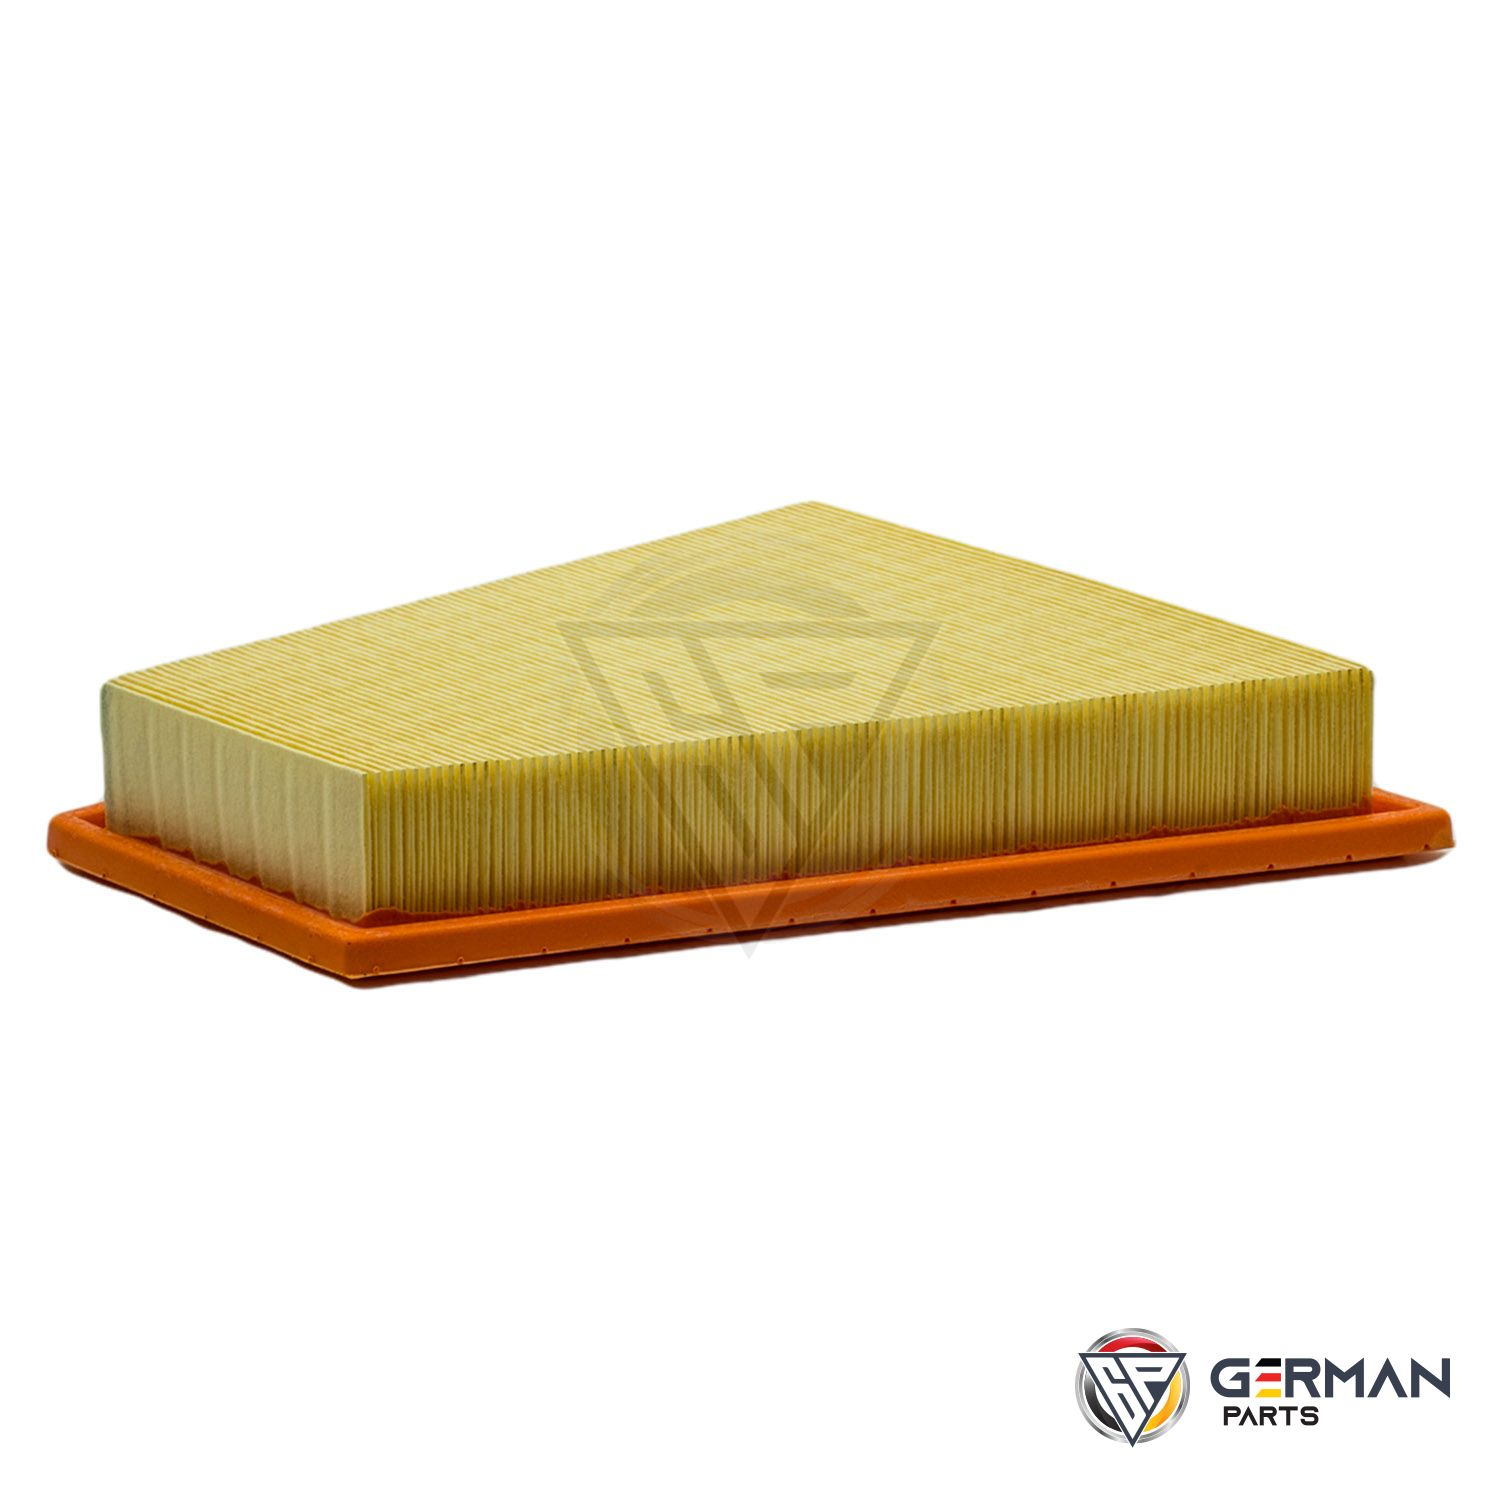 Buy BMW Air Filter 13717582908 - German Parts